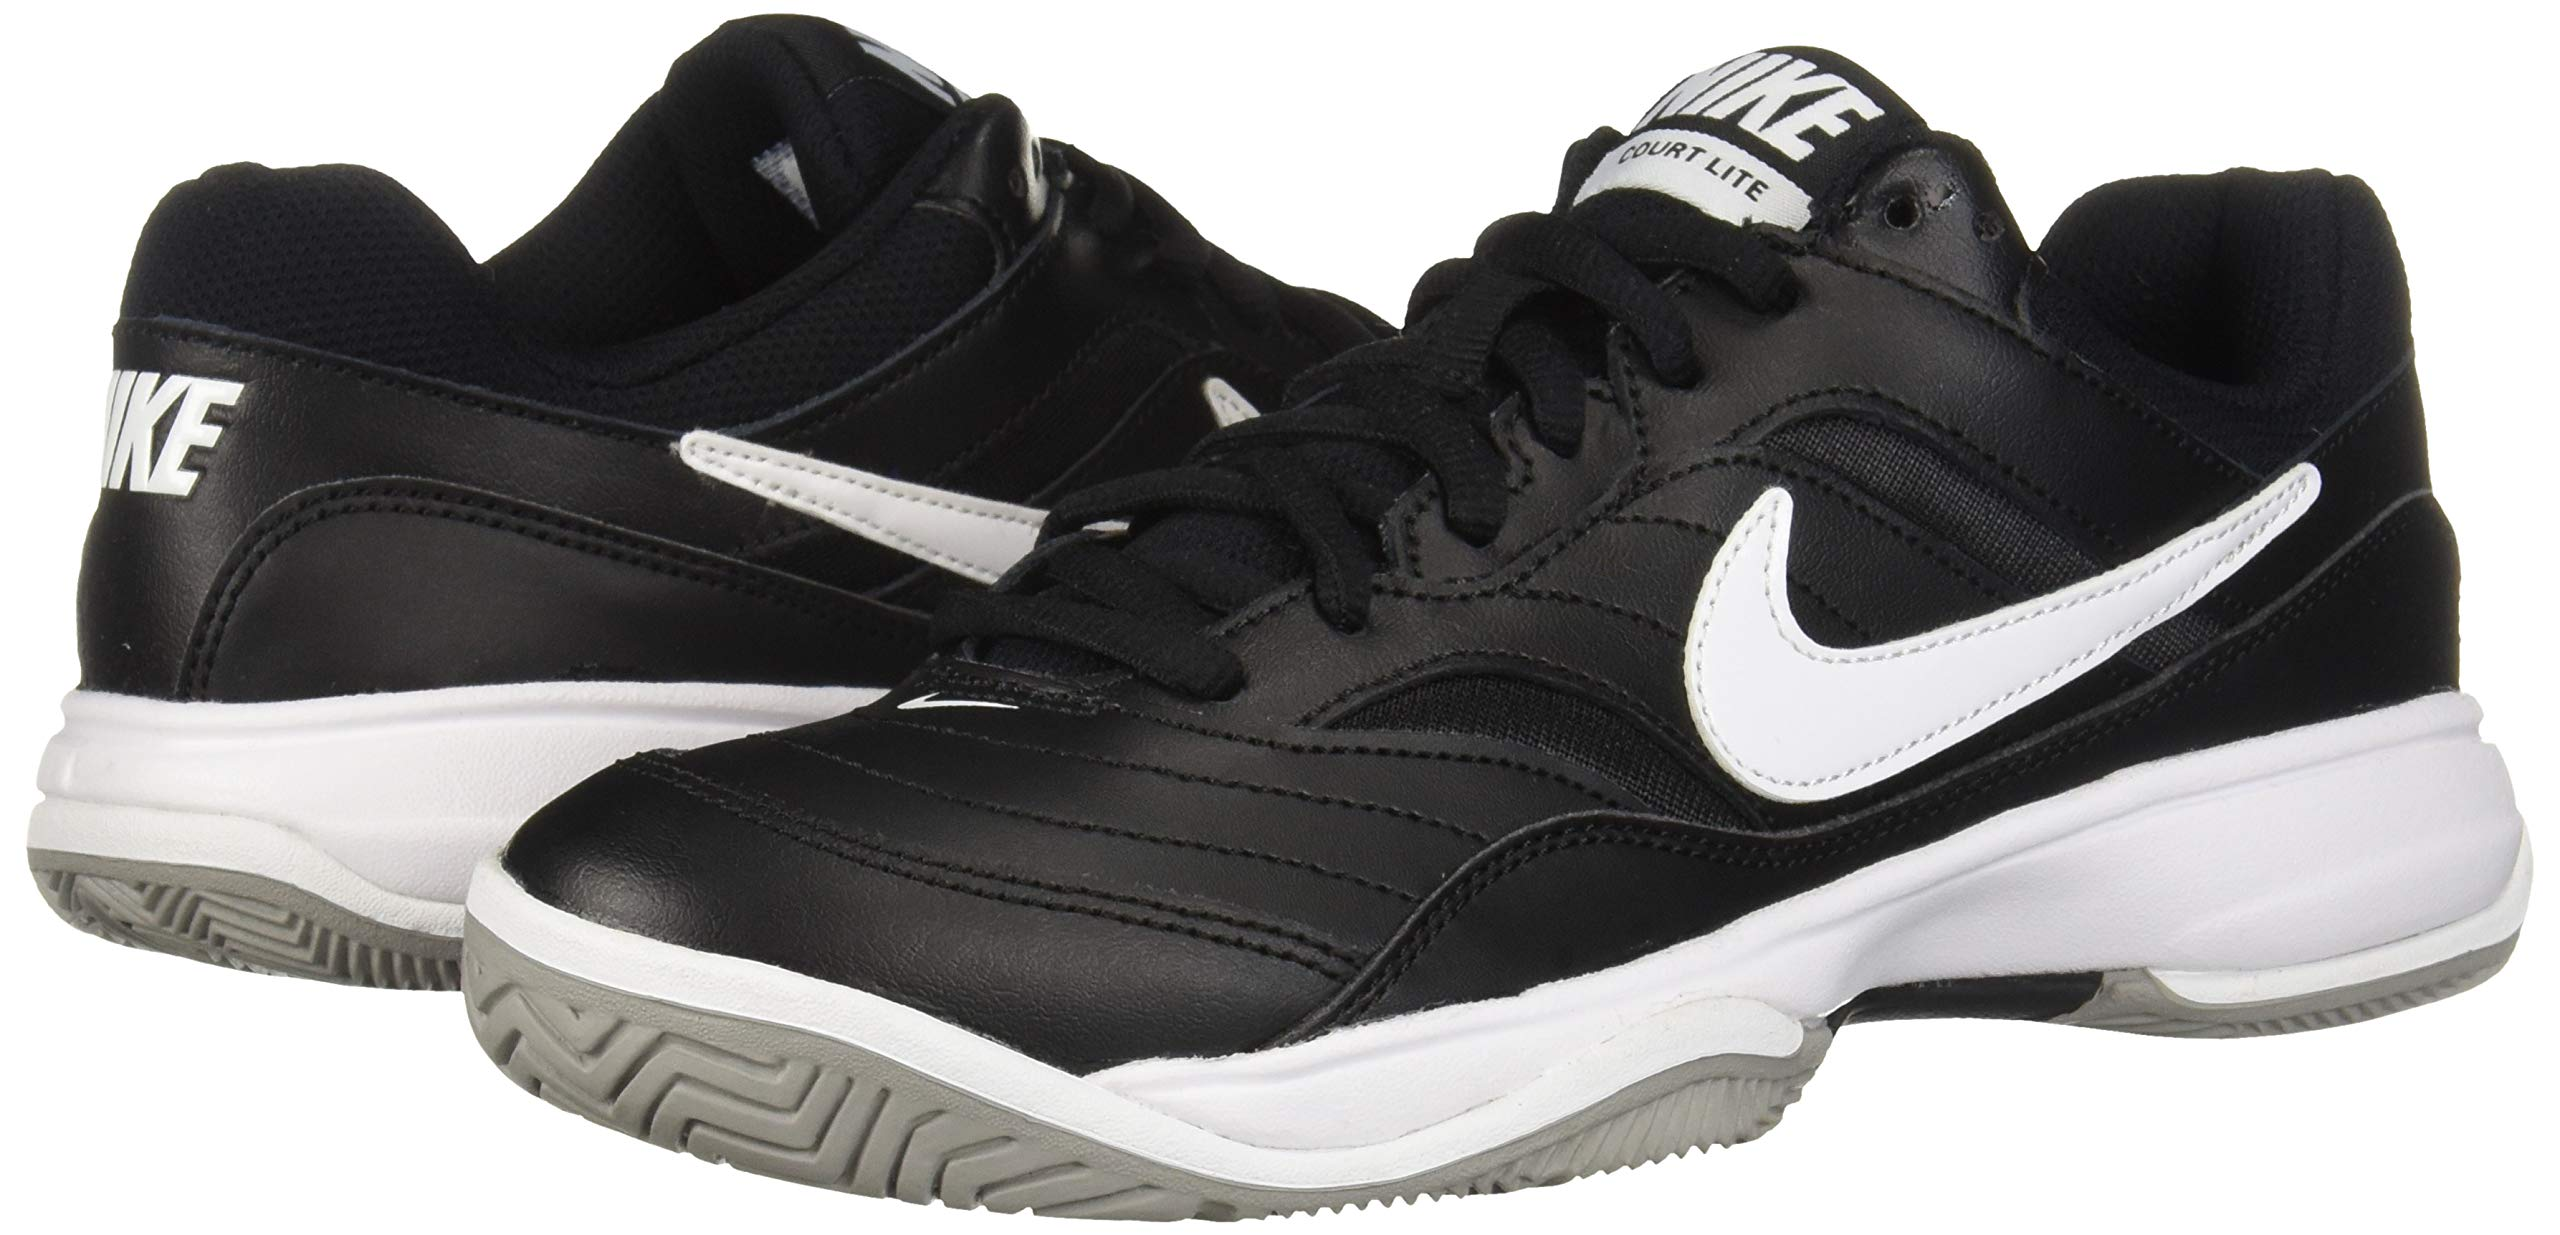 NIKE Men's Court Lite Athletic Shoe, Black/White/Medium Grey, 7.5 Regular US by Nike (Image #6)